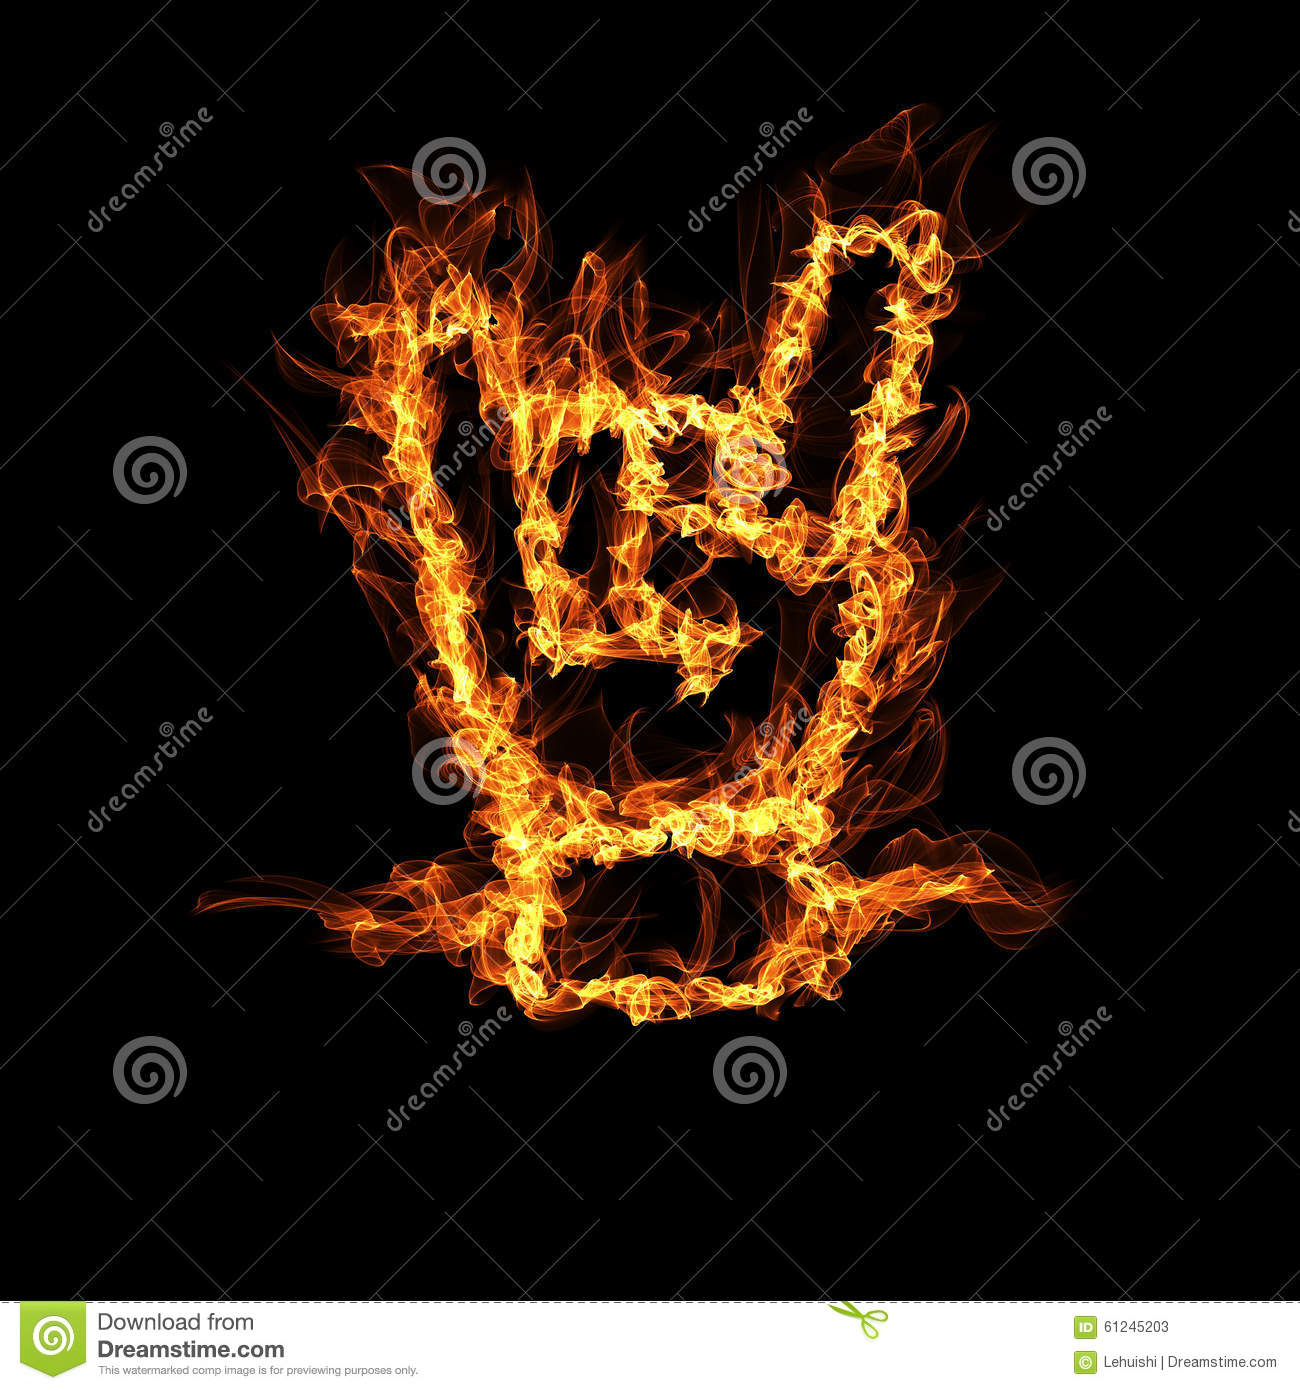 I love you language hand sign icon symbol stock for Firerock fireplace cost